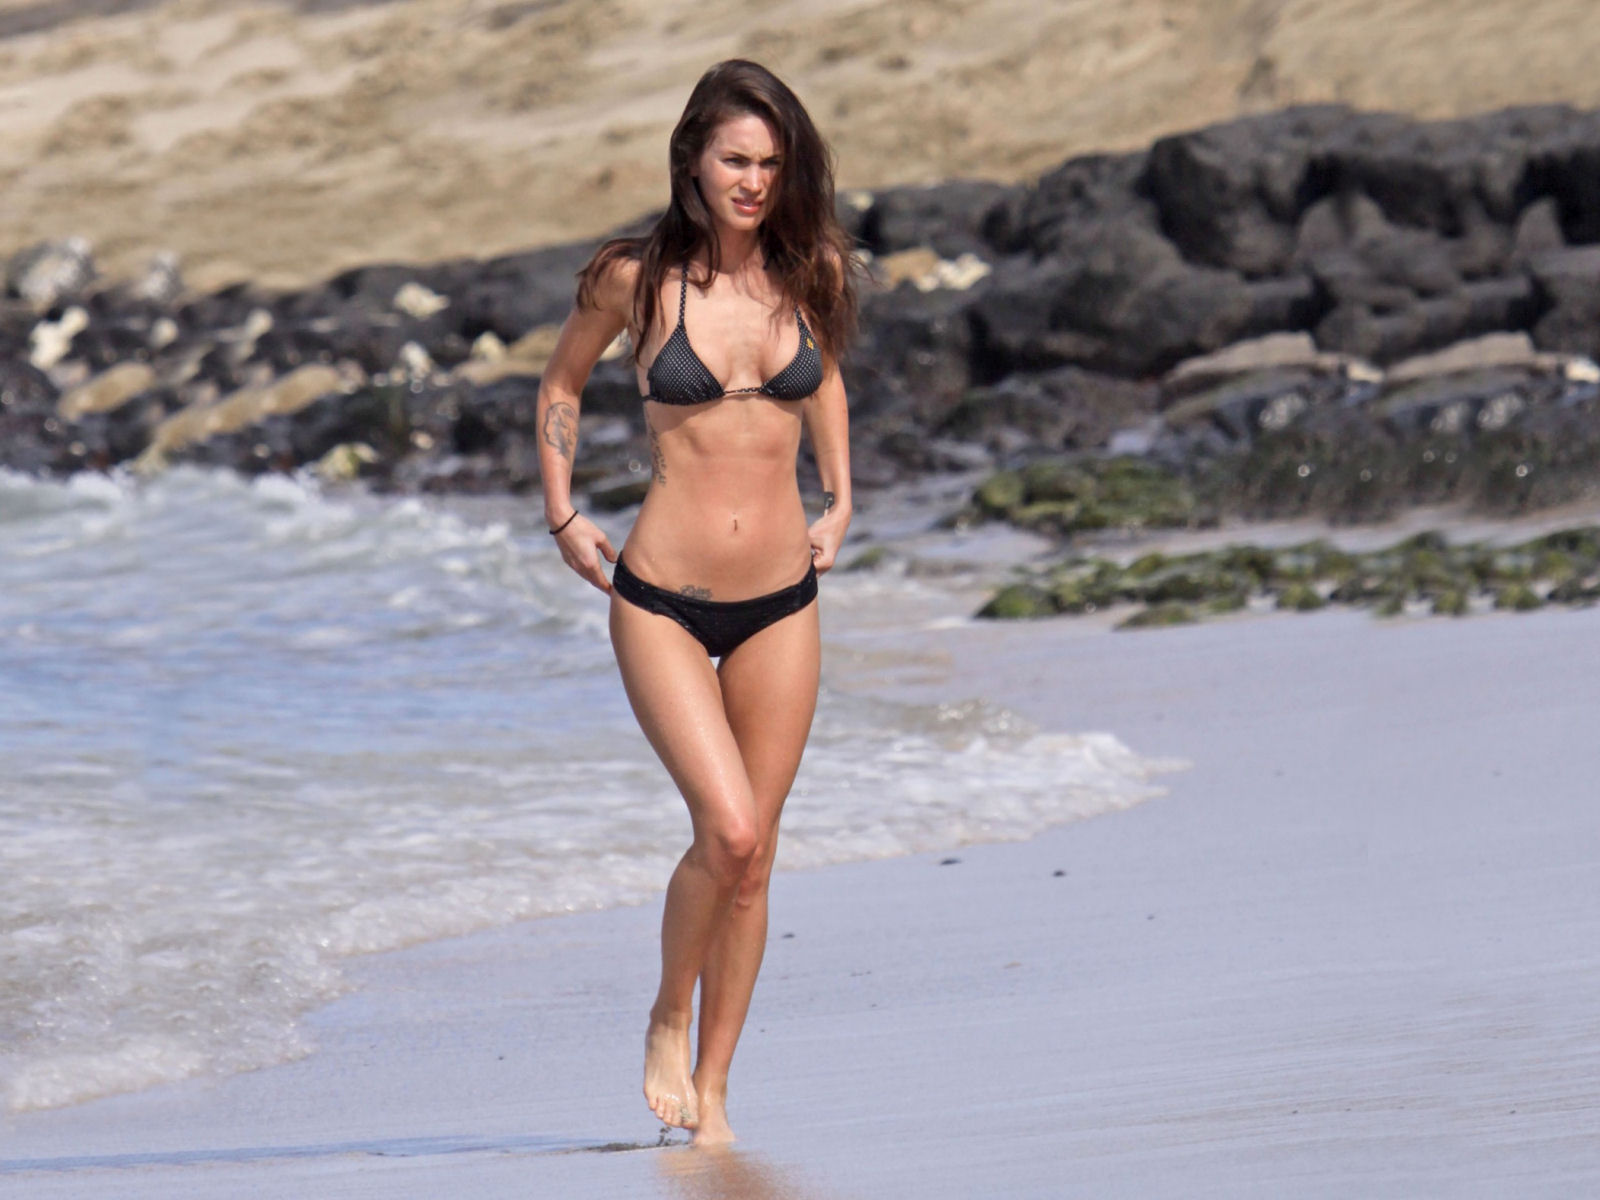 49 Megan Fox Boobs Sex Photos Are Just Heaven For Viewing